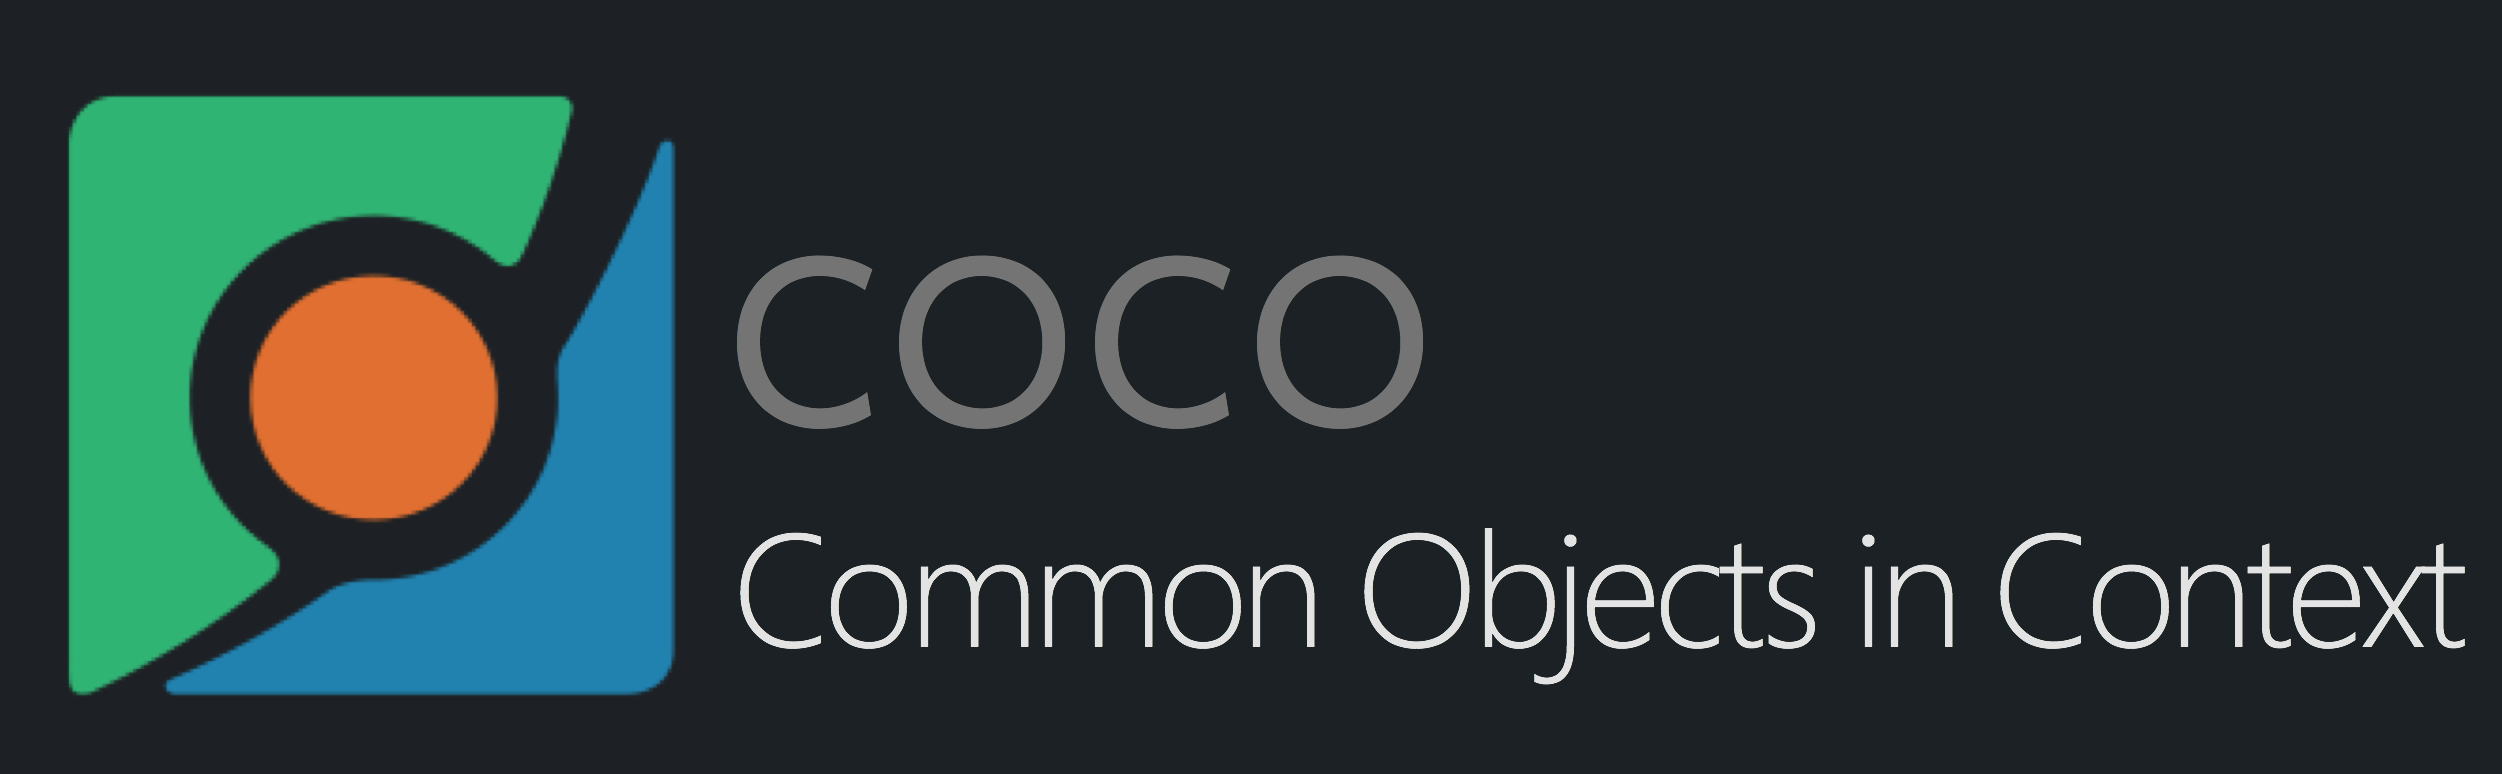 COCO - Common Objects in Context